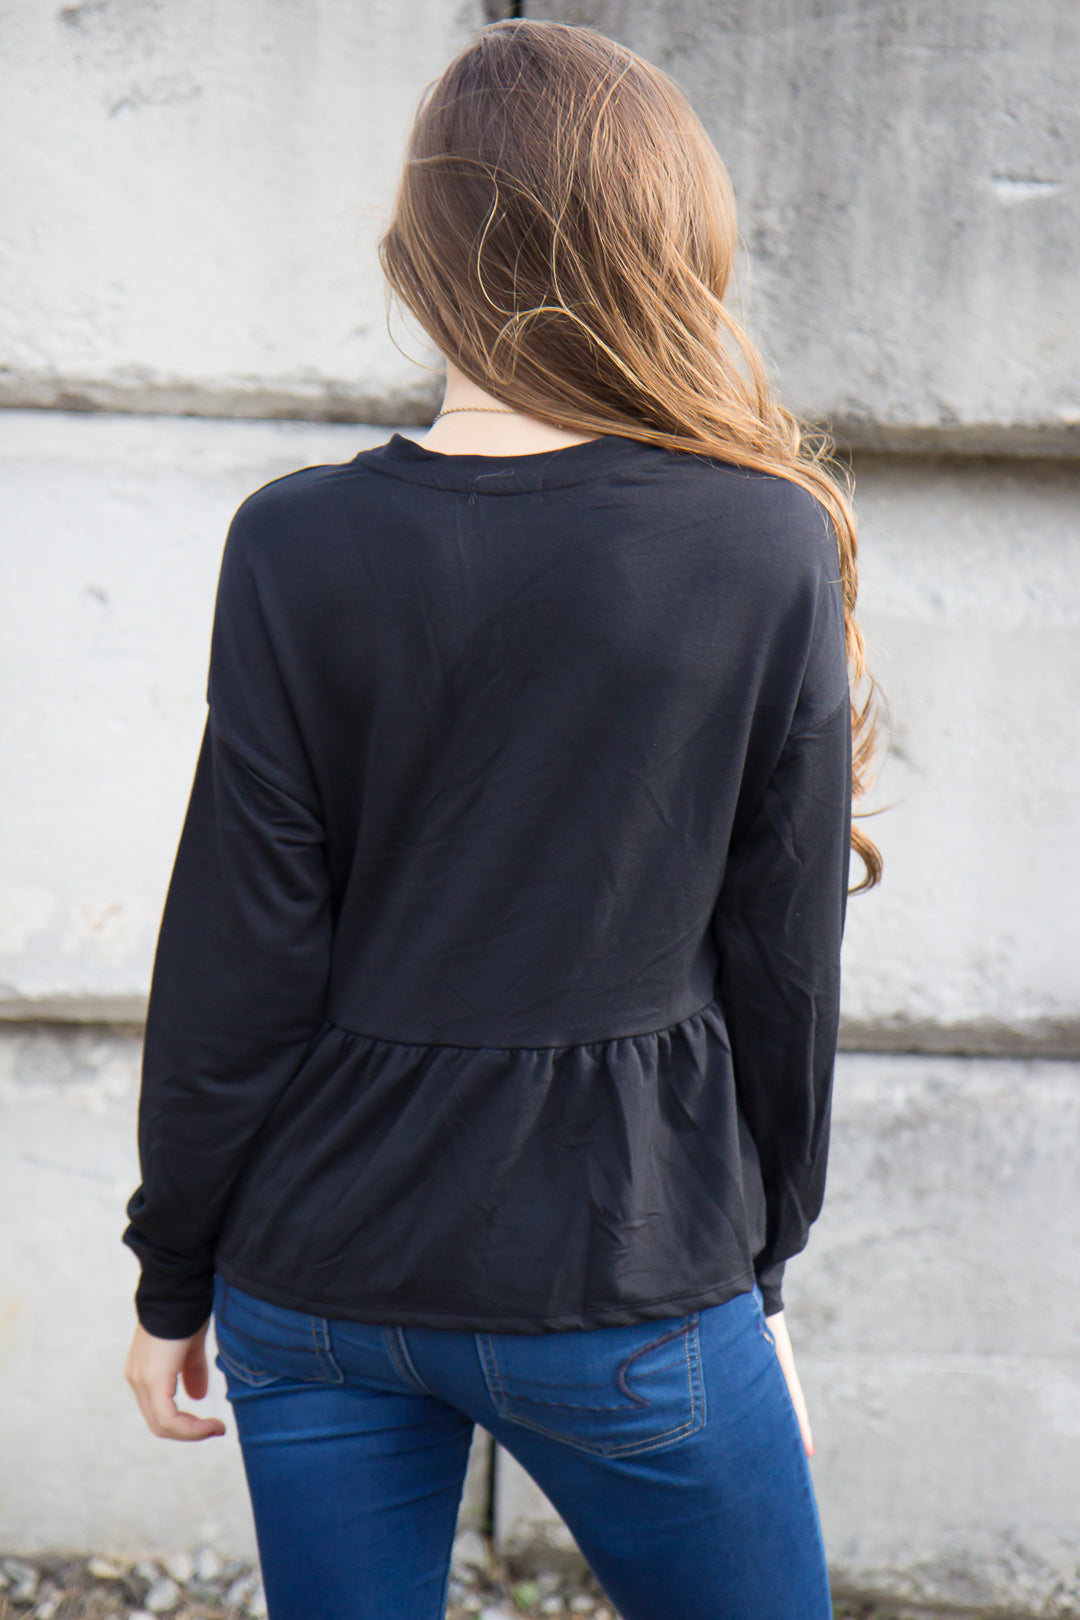 Frills & Thrills Top - Black - Final Sale